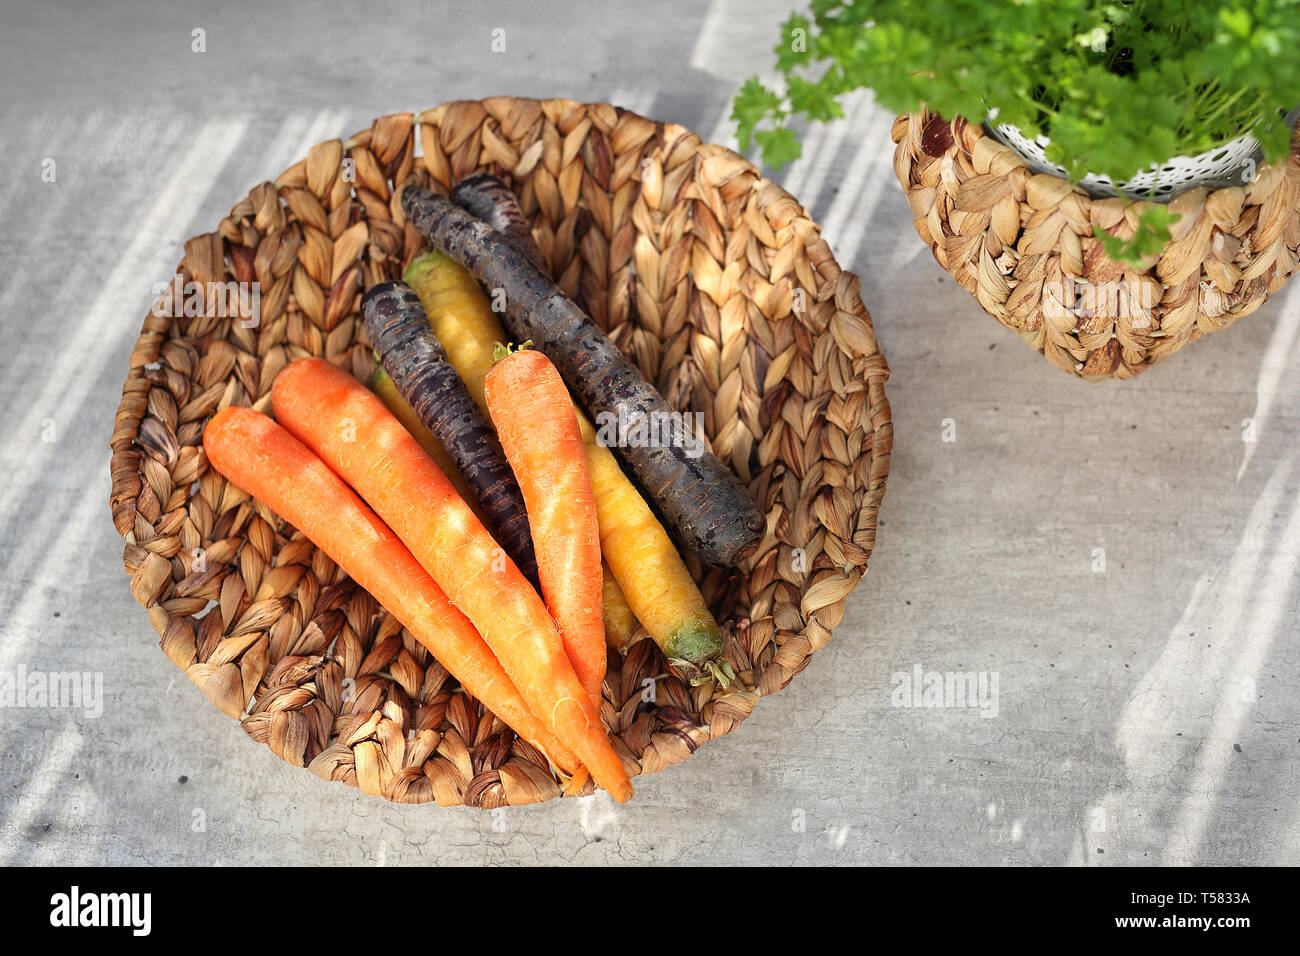 Colorful carrots, yellow, orange and purple.  Basket with vegetables on a kitchen counte Stock Photo